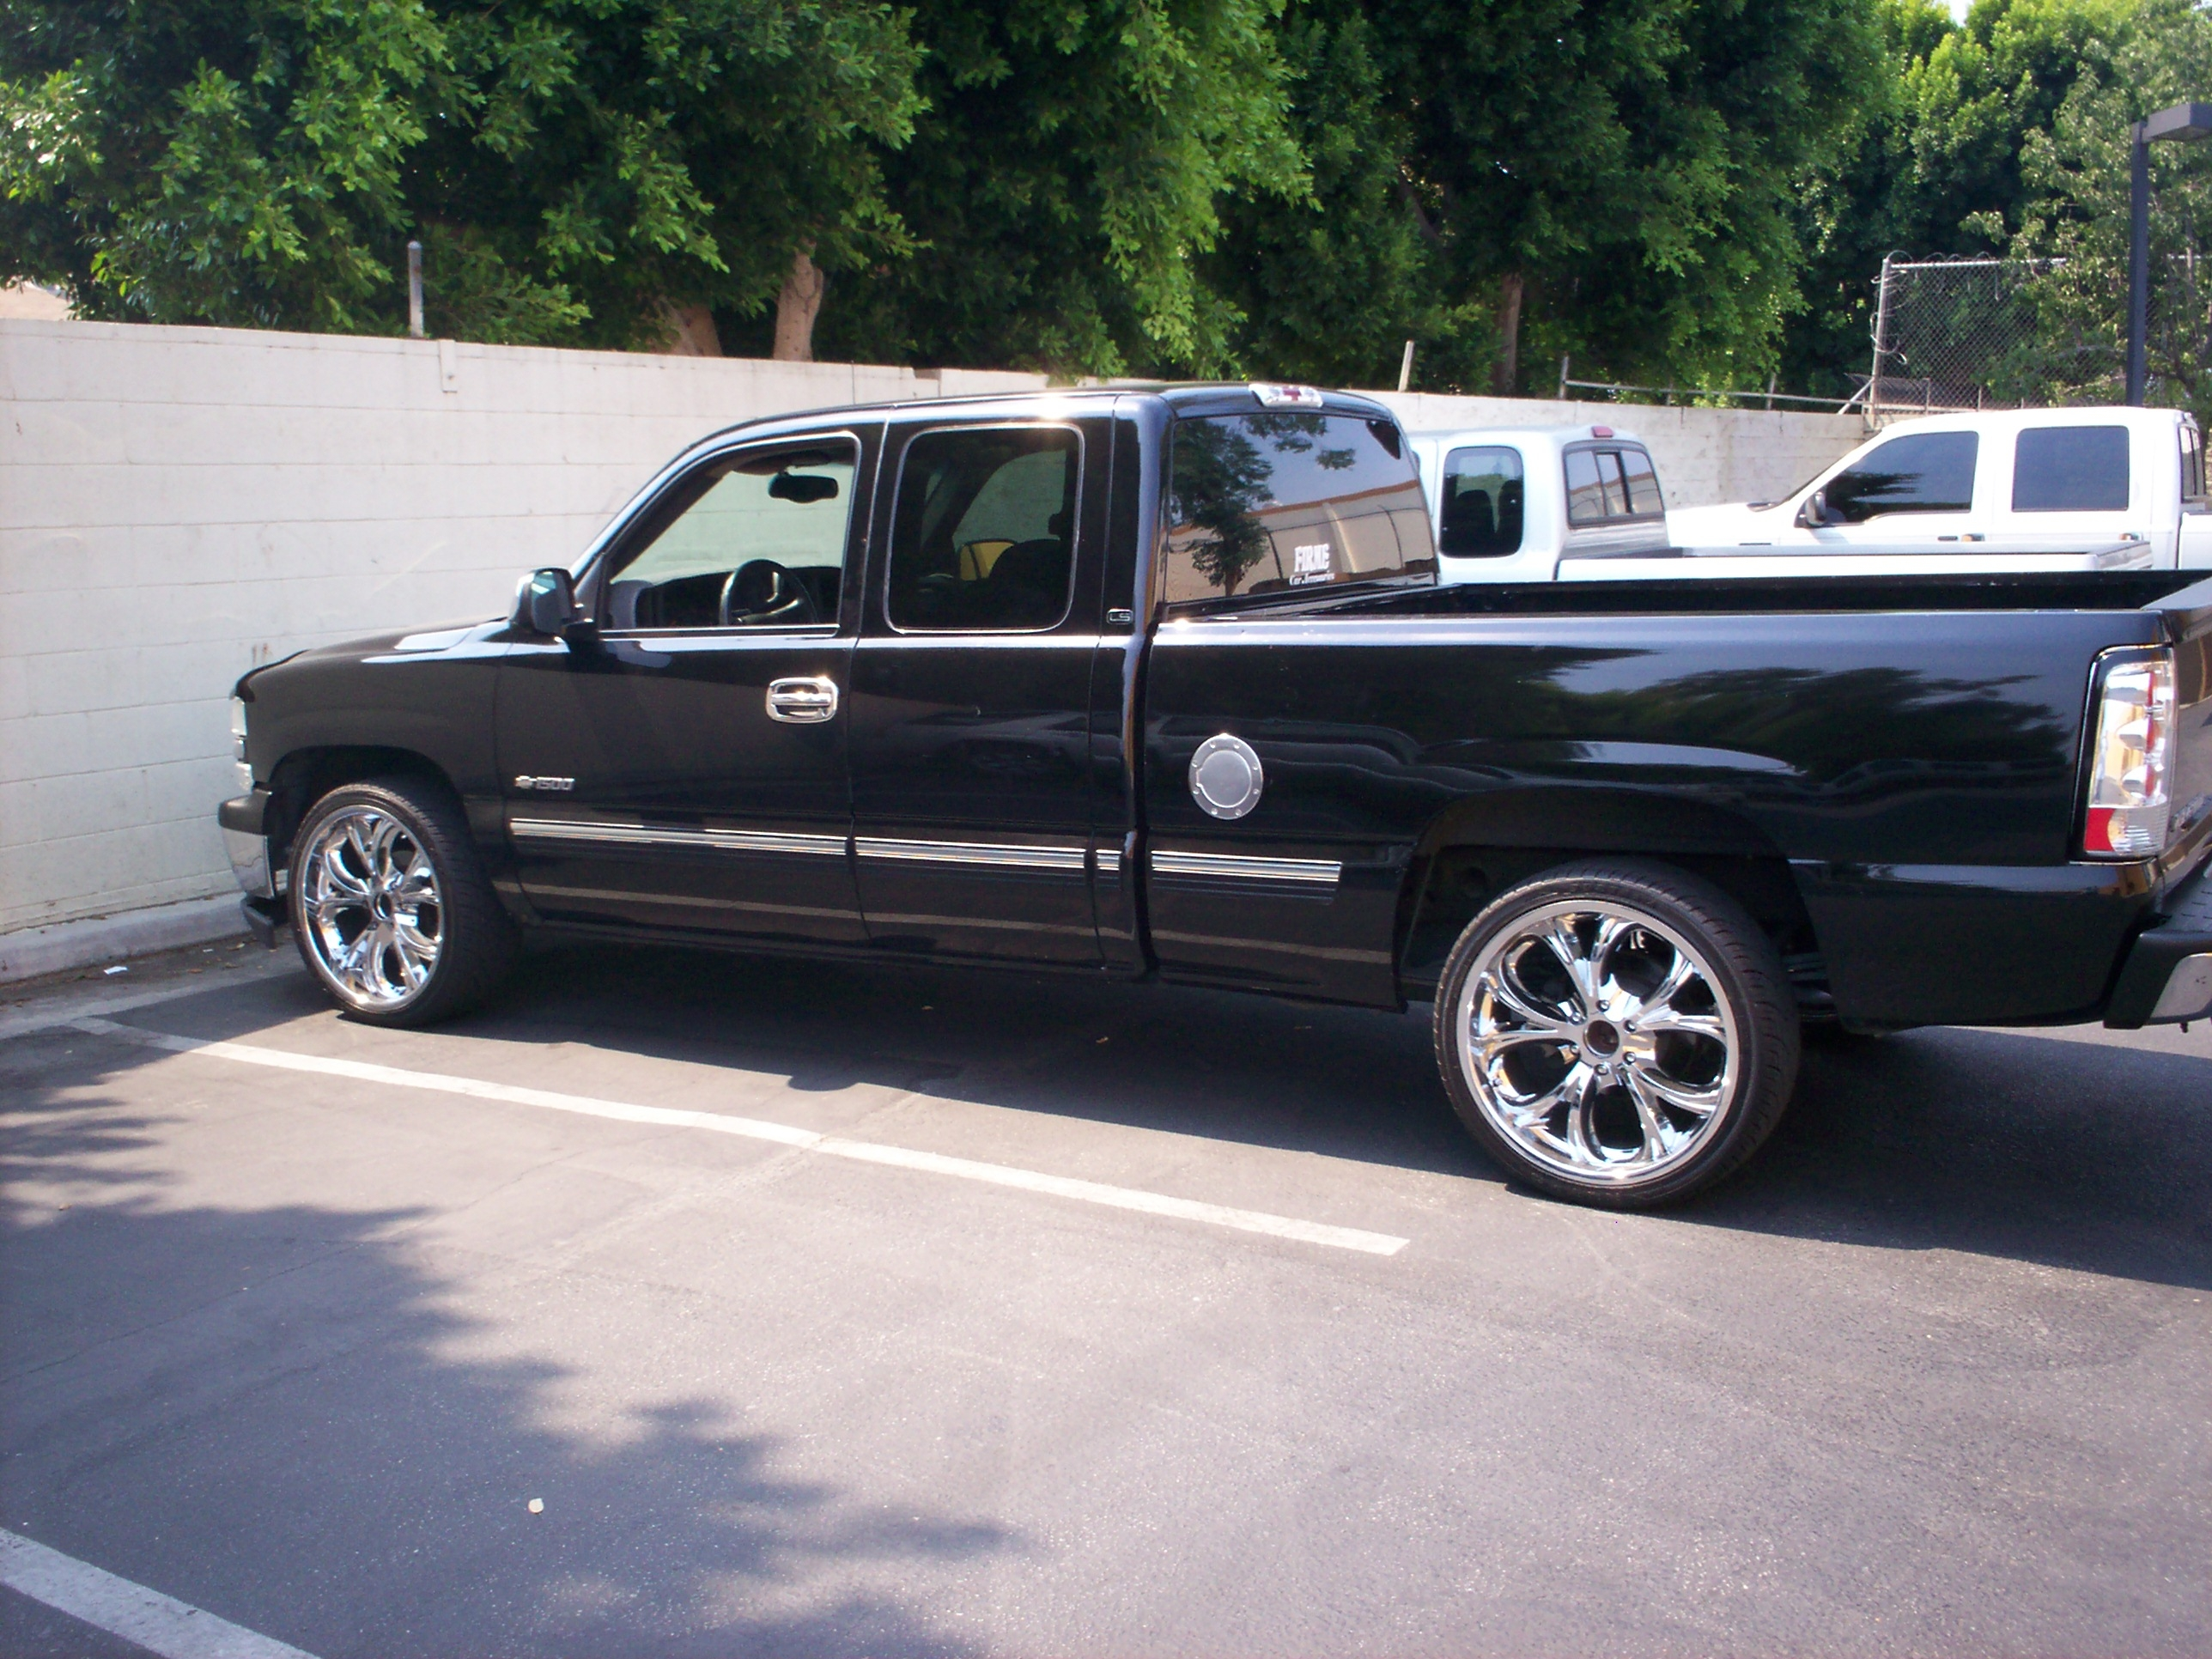 socal ss 2006 chevrolet silverado 1500 extended cab specs photos modification info at cardomain. Black Bedroom Furniture Sets. Home Design Ideas